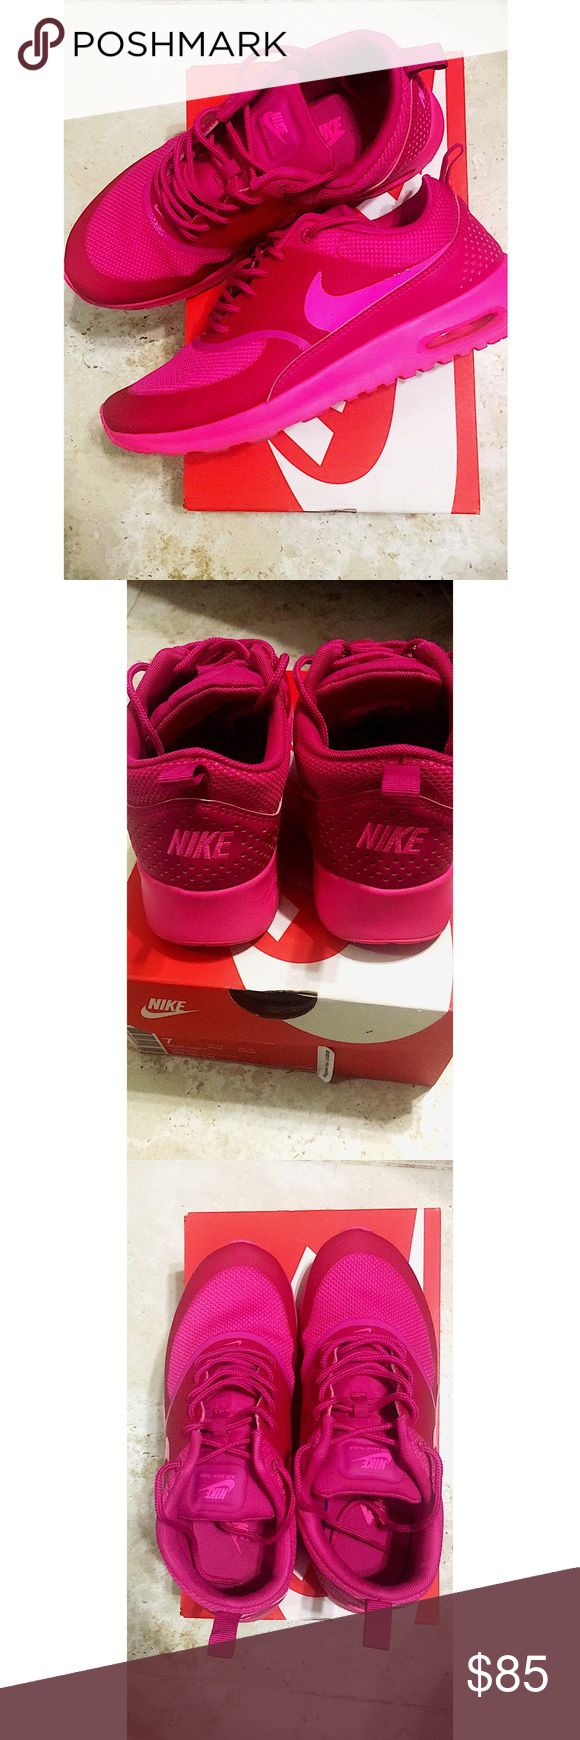 💋SALE❗️TRENDY!❗️Nike Air Max shoes 💝Highly trendy!! Hot pink, barely worn, great condition! Run a half size smaller. NO TRADES!! Lowest price! 💕 Nike Shoes Athletic Shoes